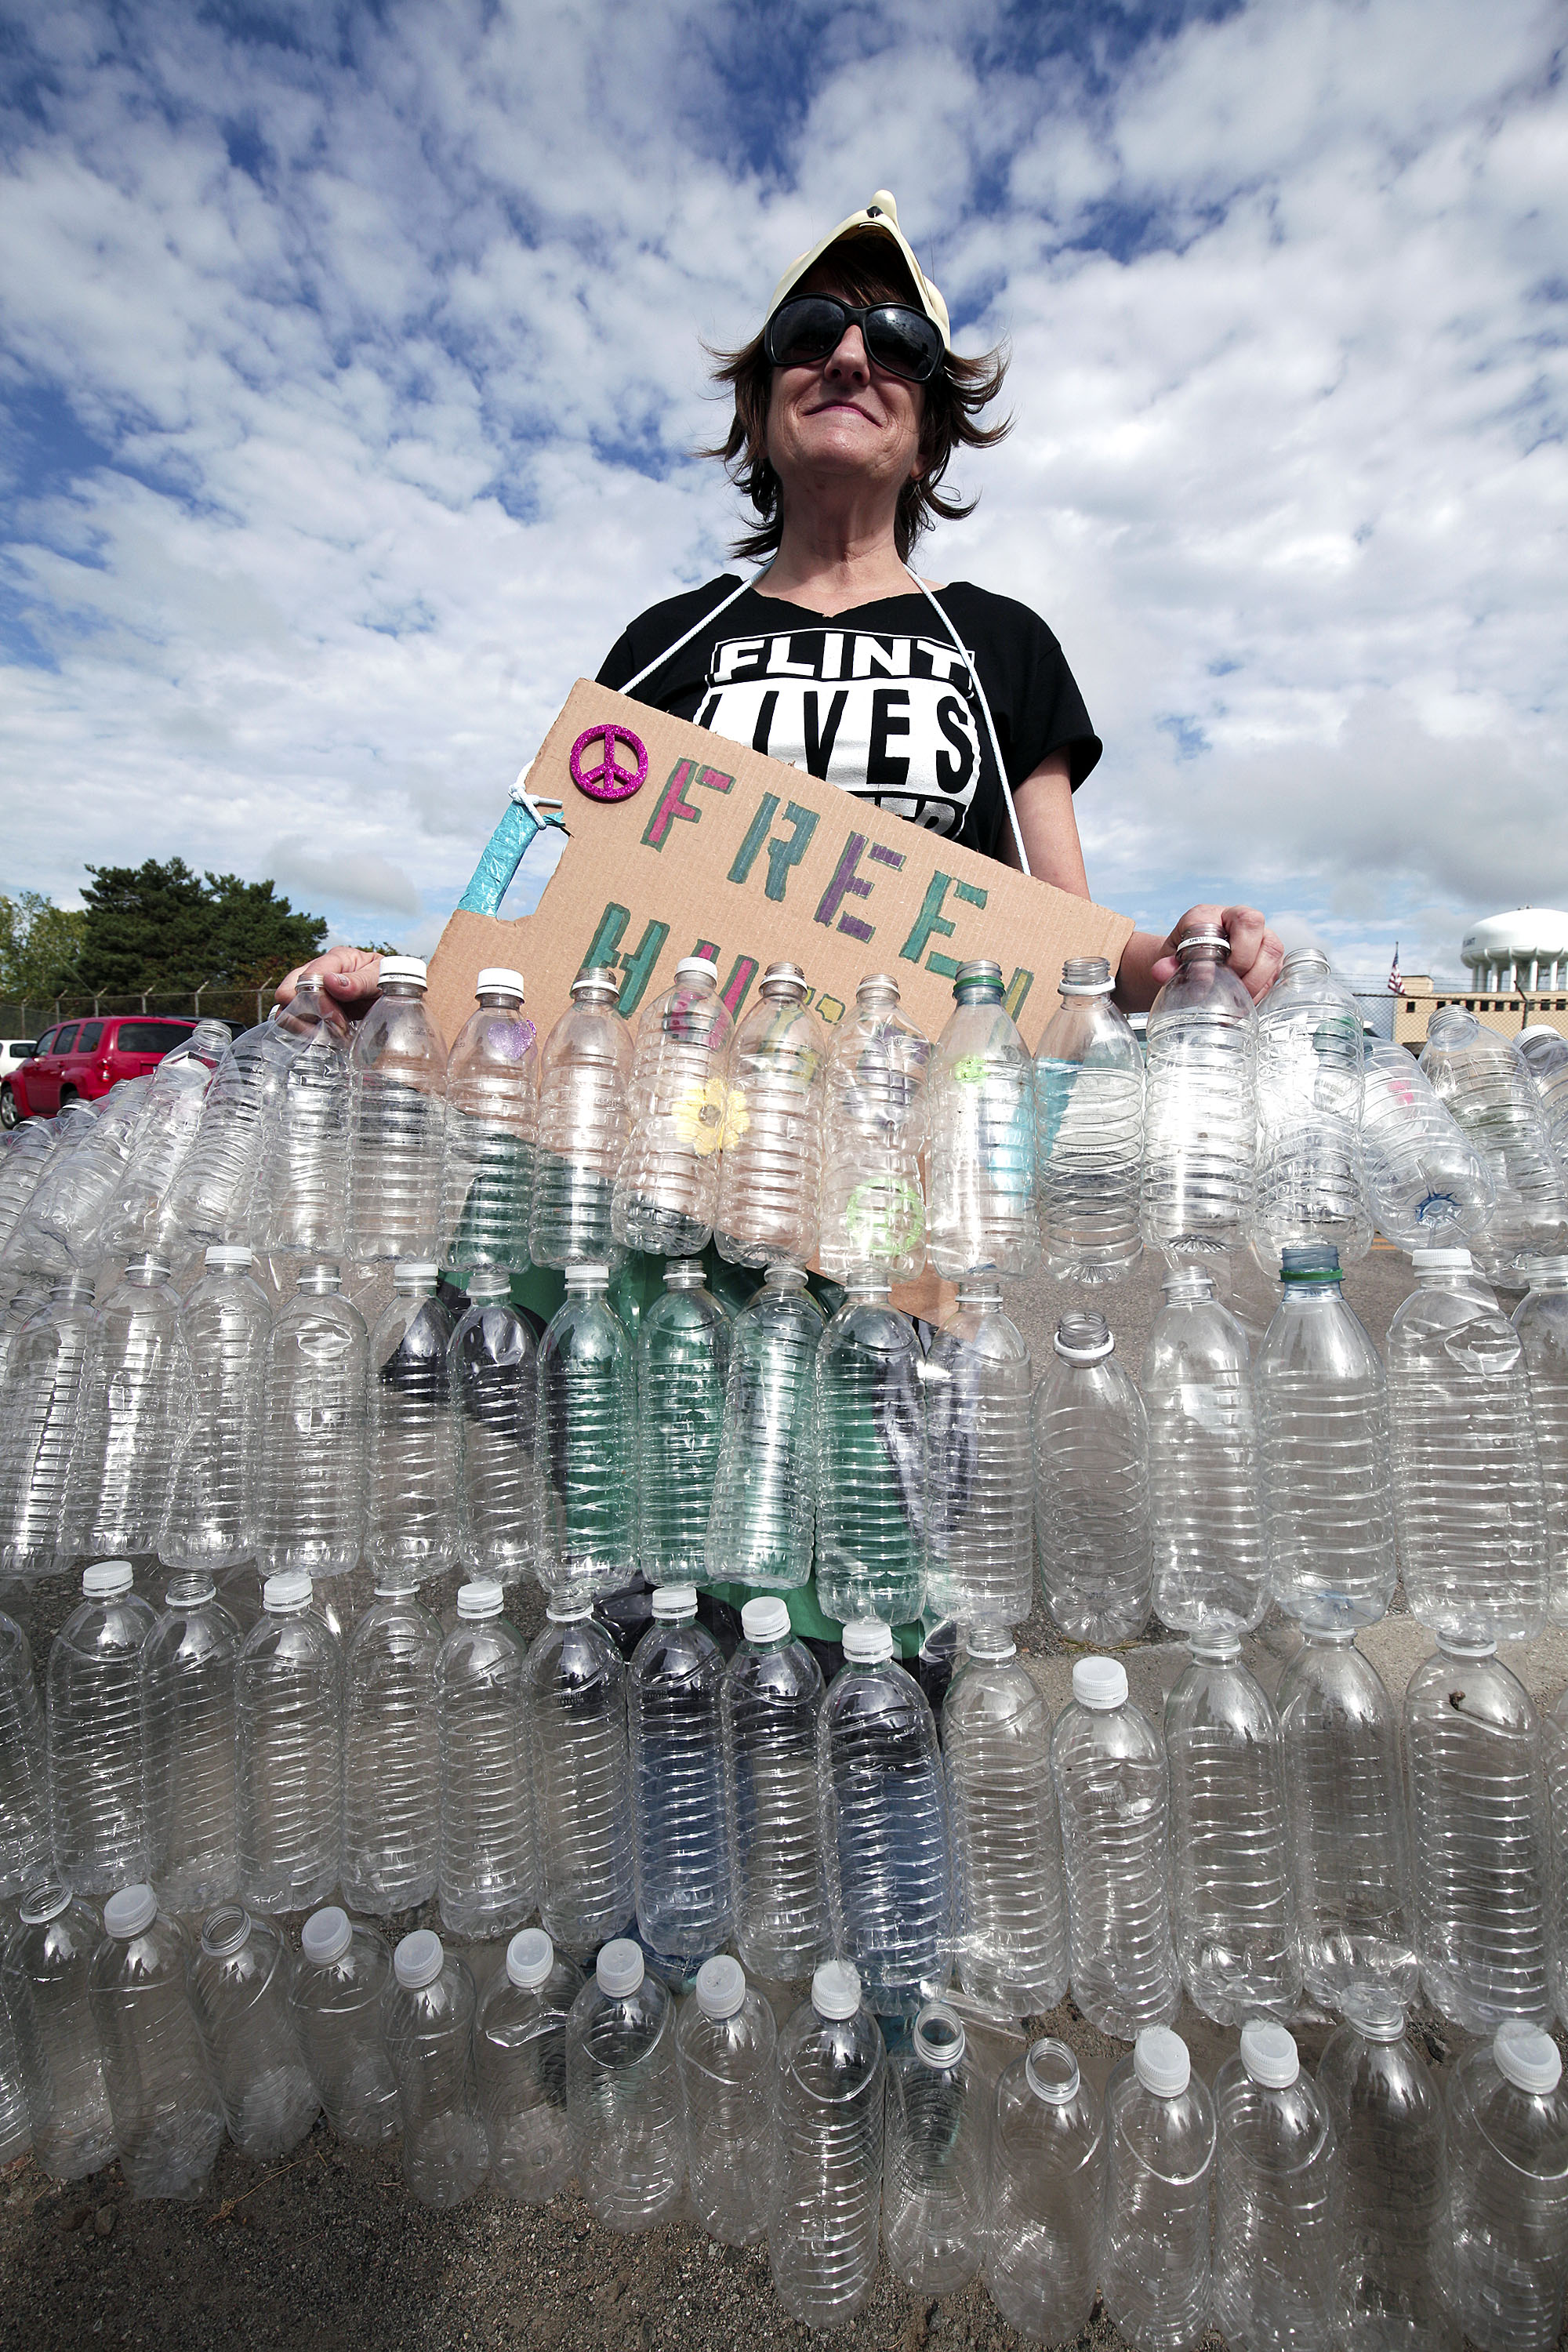 Teresa Teal of Flint, Michigan protests Republican Presidential Nominee Donald Trump's visit to Flint today at the Flint Water Treatment Plant September 14, 2016 in Flint, Michigan. (Photo by Bill Pugliano/Getty Images)